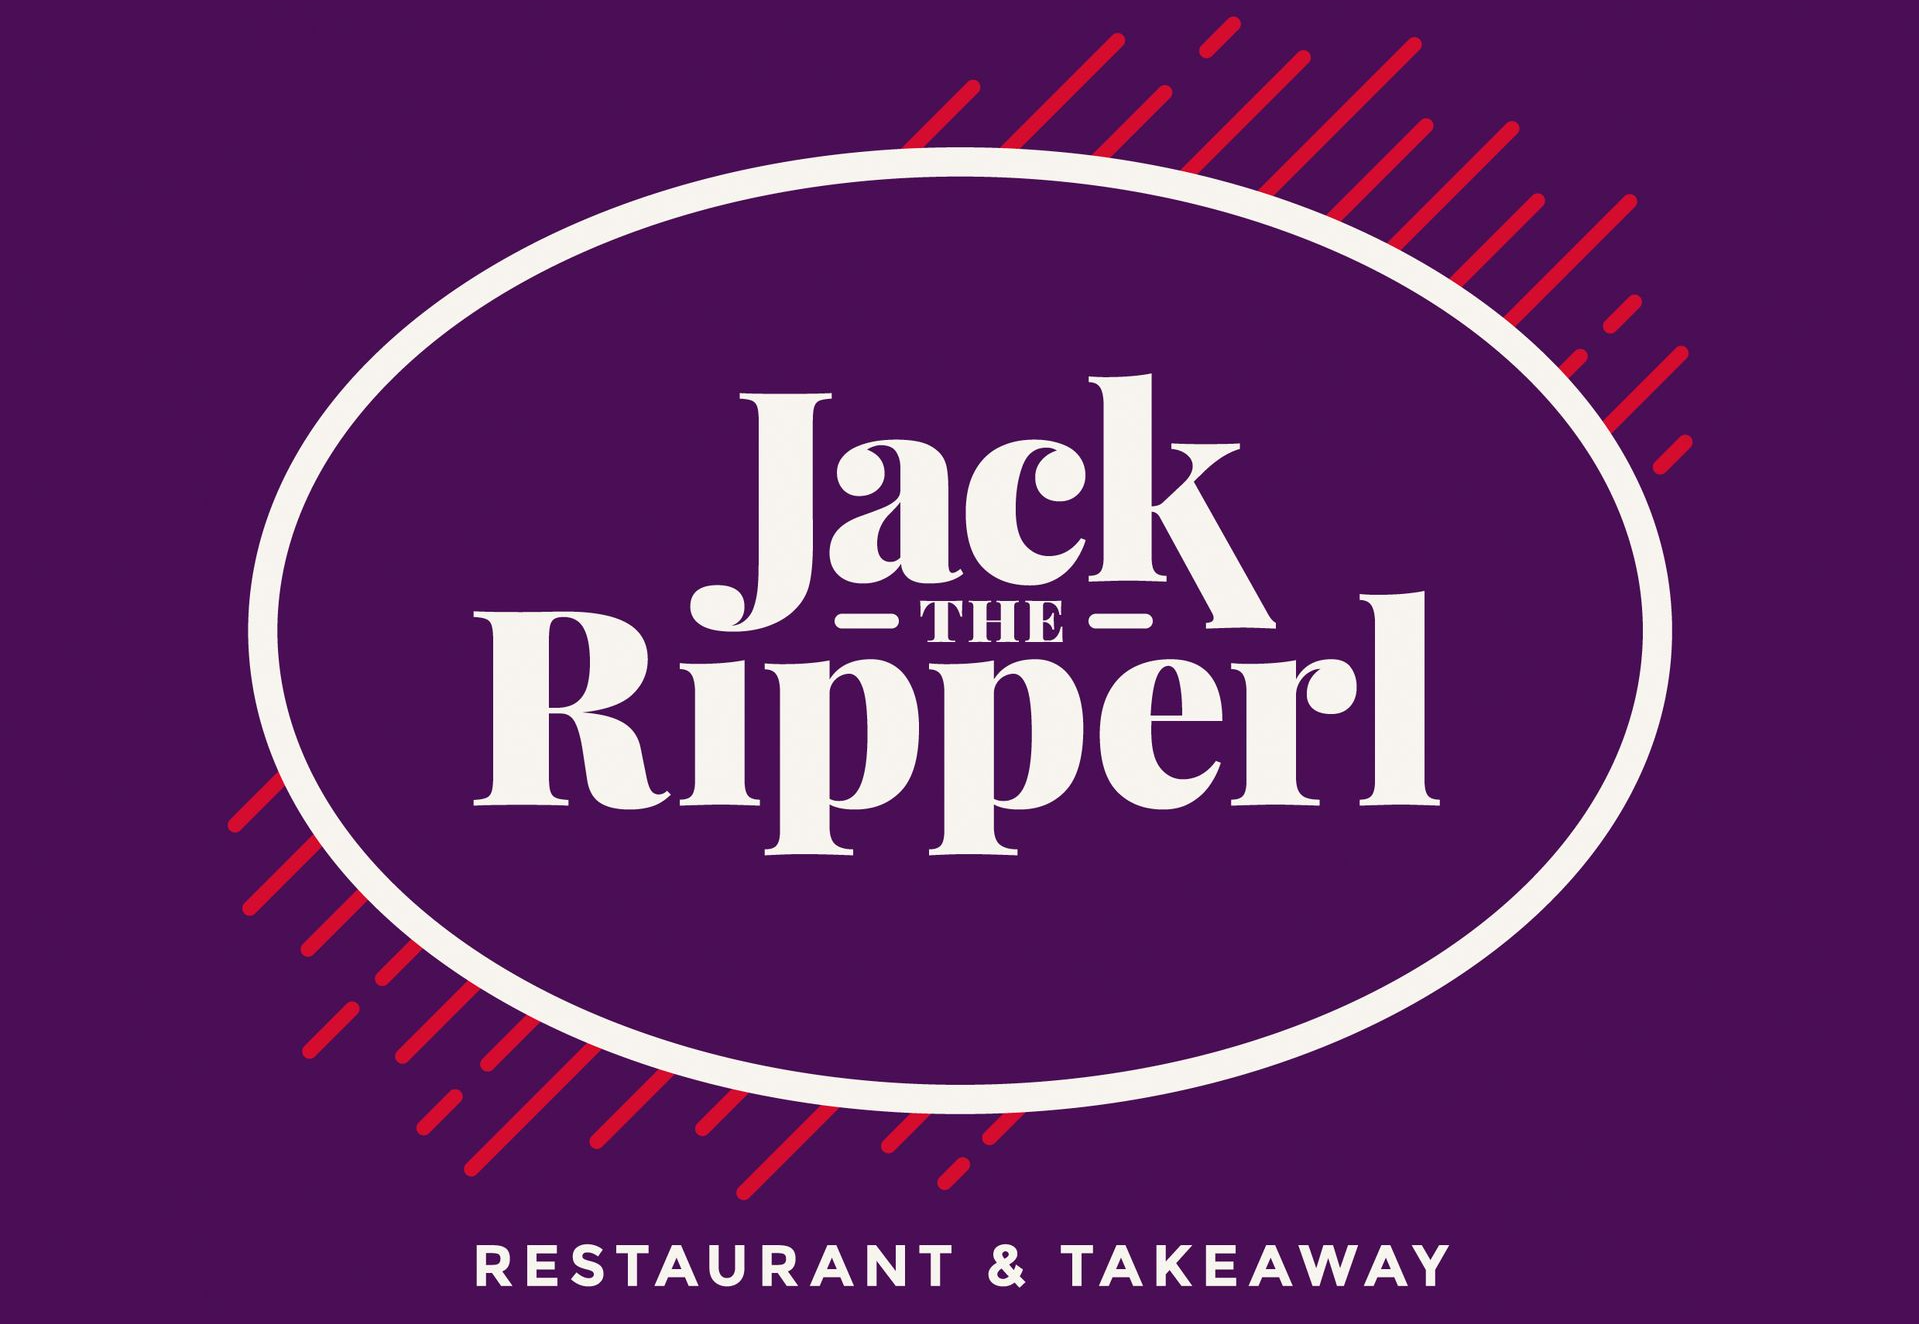 Jack the Ripperl